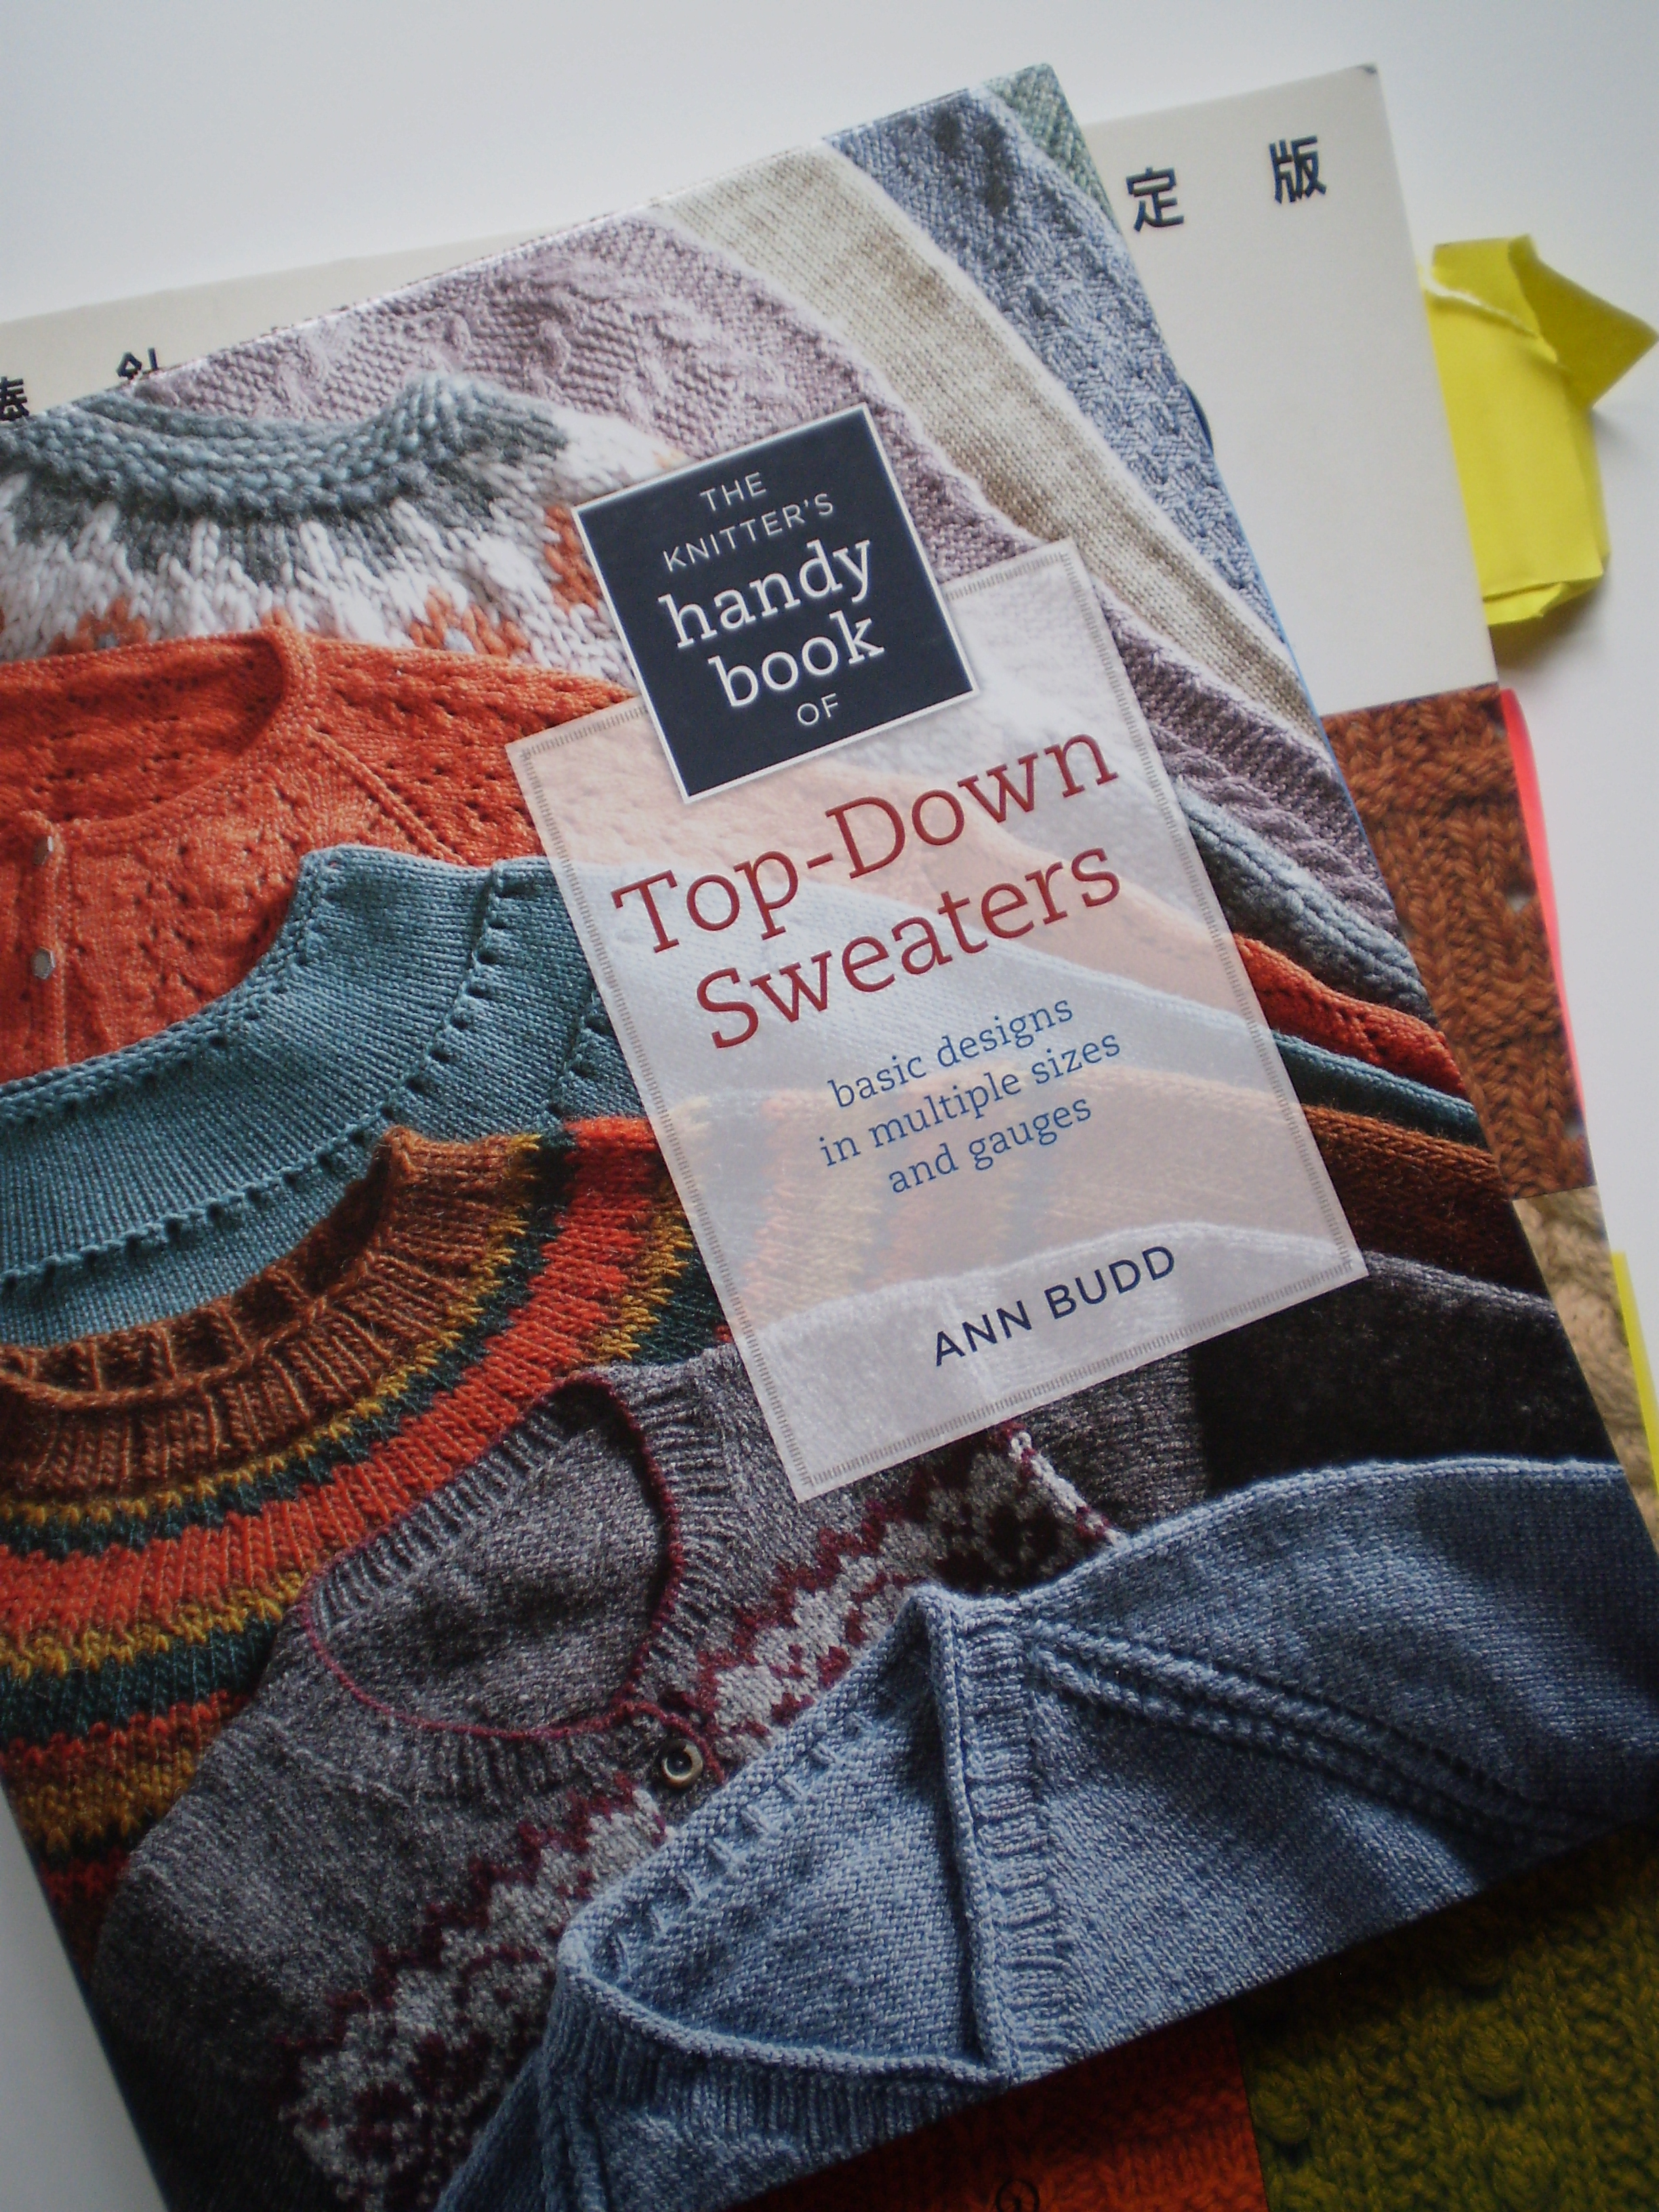 abbbe1d4da49 knitter s handy book of top-down sweaters